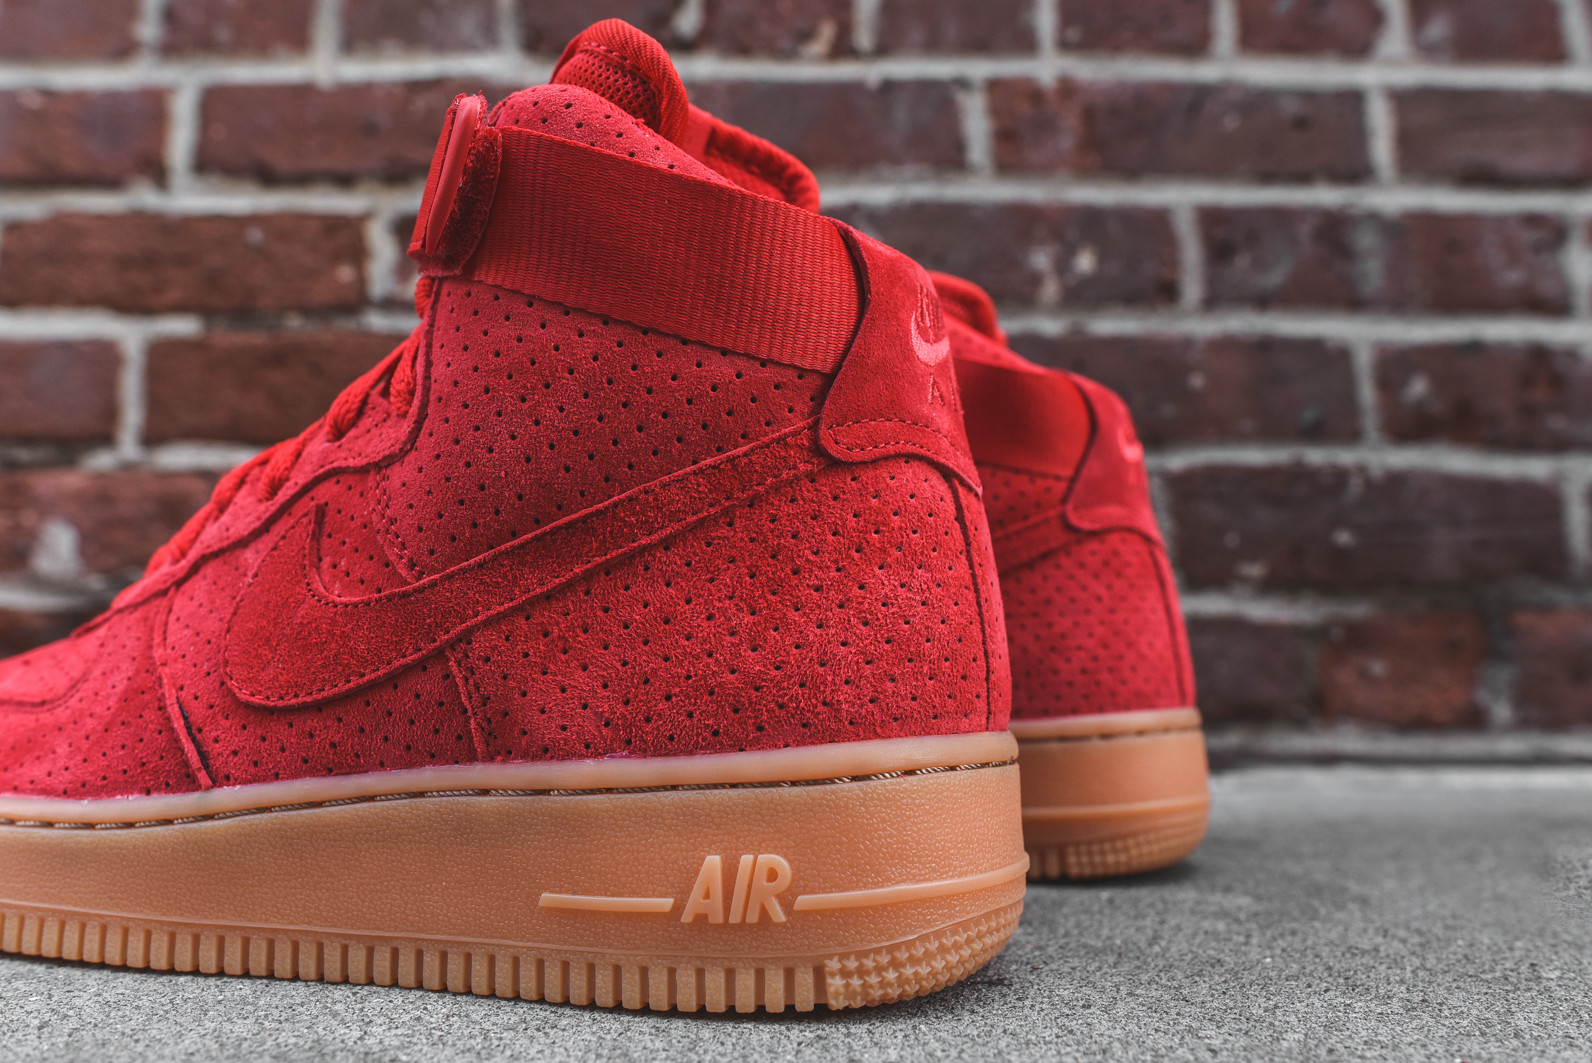 hot sales 46eb4 62649 nike air force 1 Archives - Air 23 - Air Jordan Release Dates ...